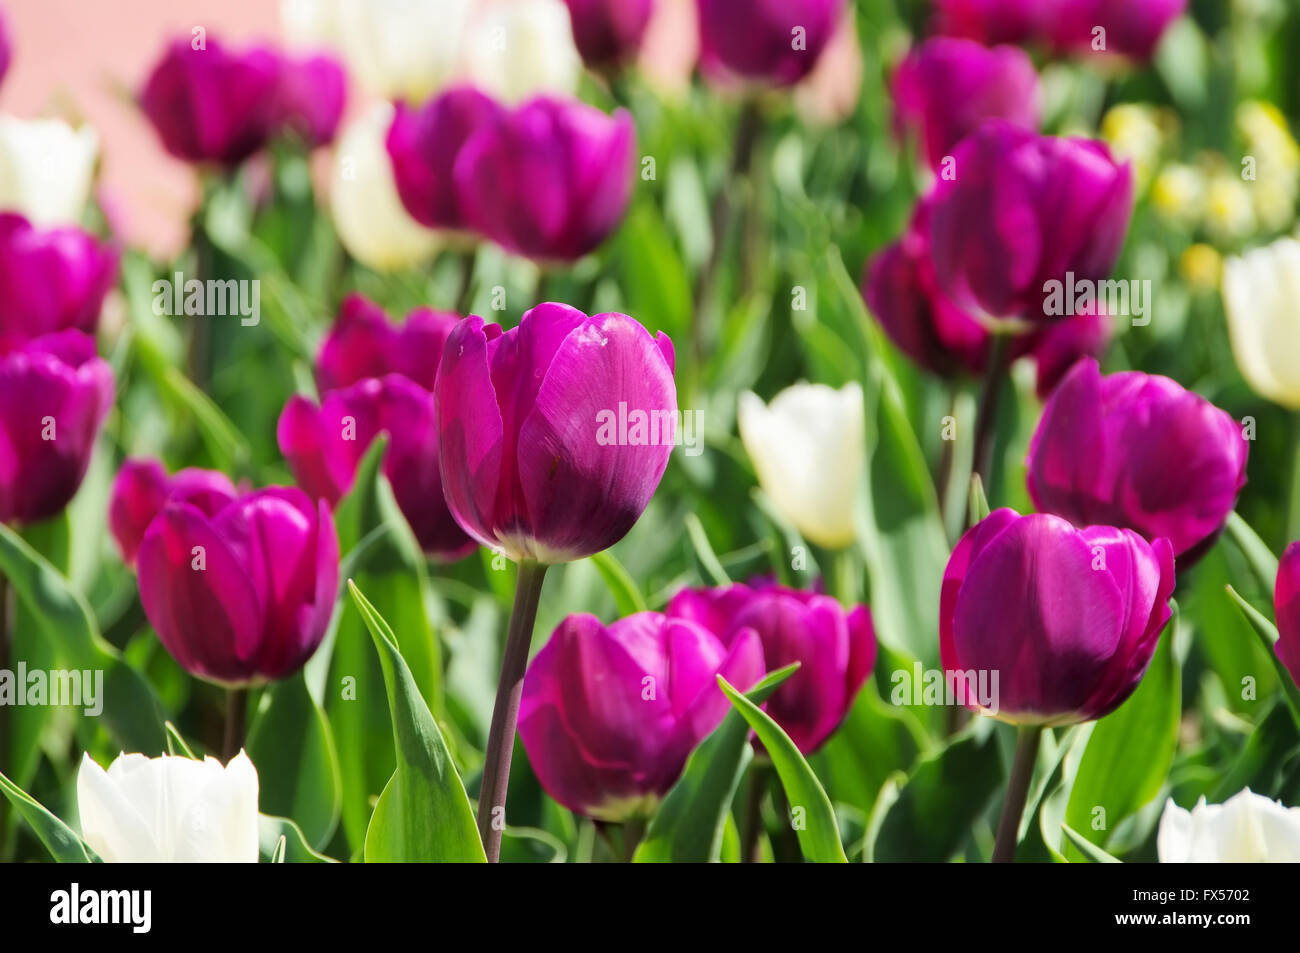 Tulpen lila und weiss - tulips purple and white 03 - Stock Image